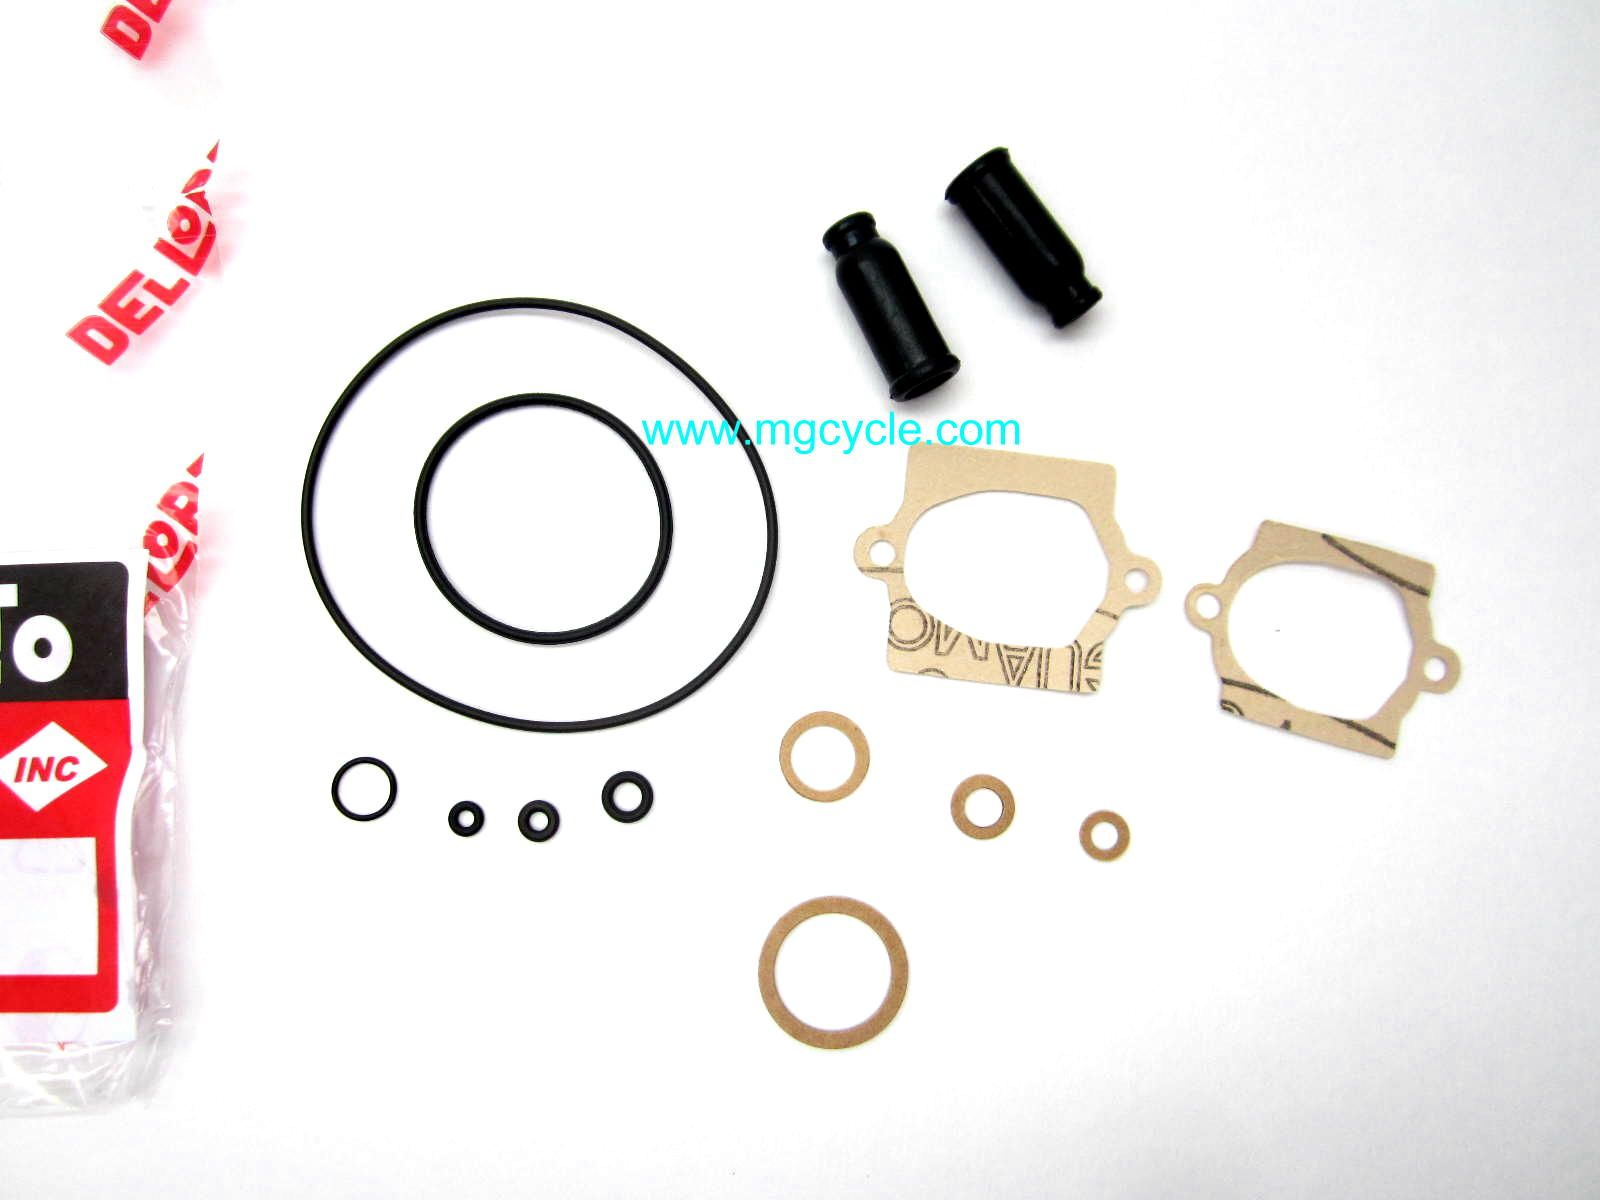 Dellorto 52510 gasket kit 17939950 VHB VHBZ VHBT carburetors